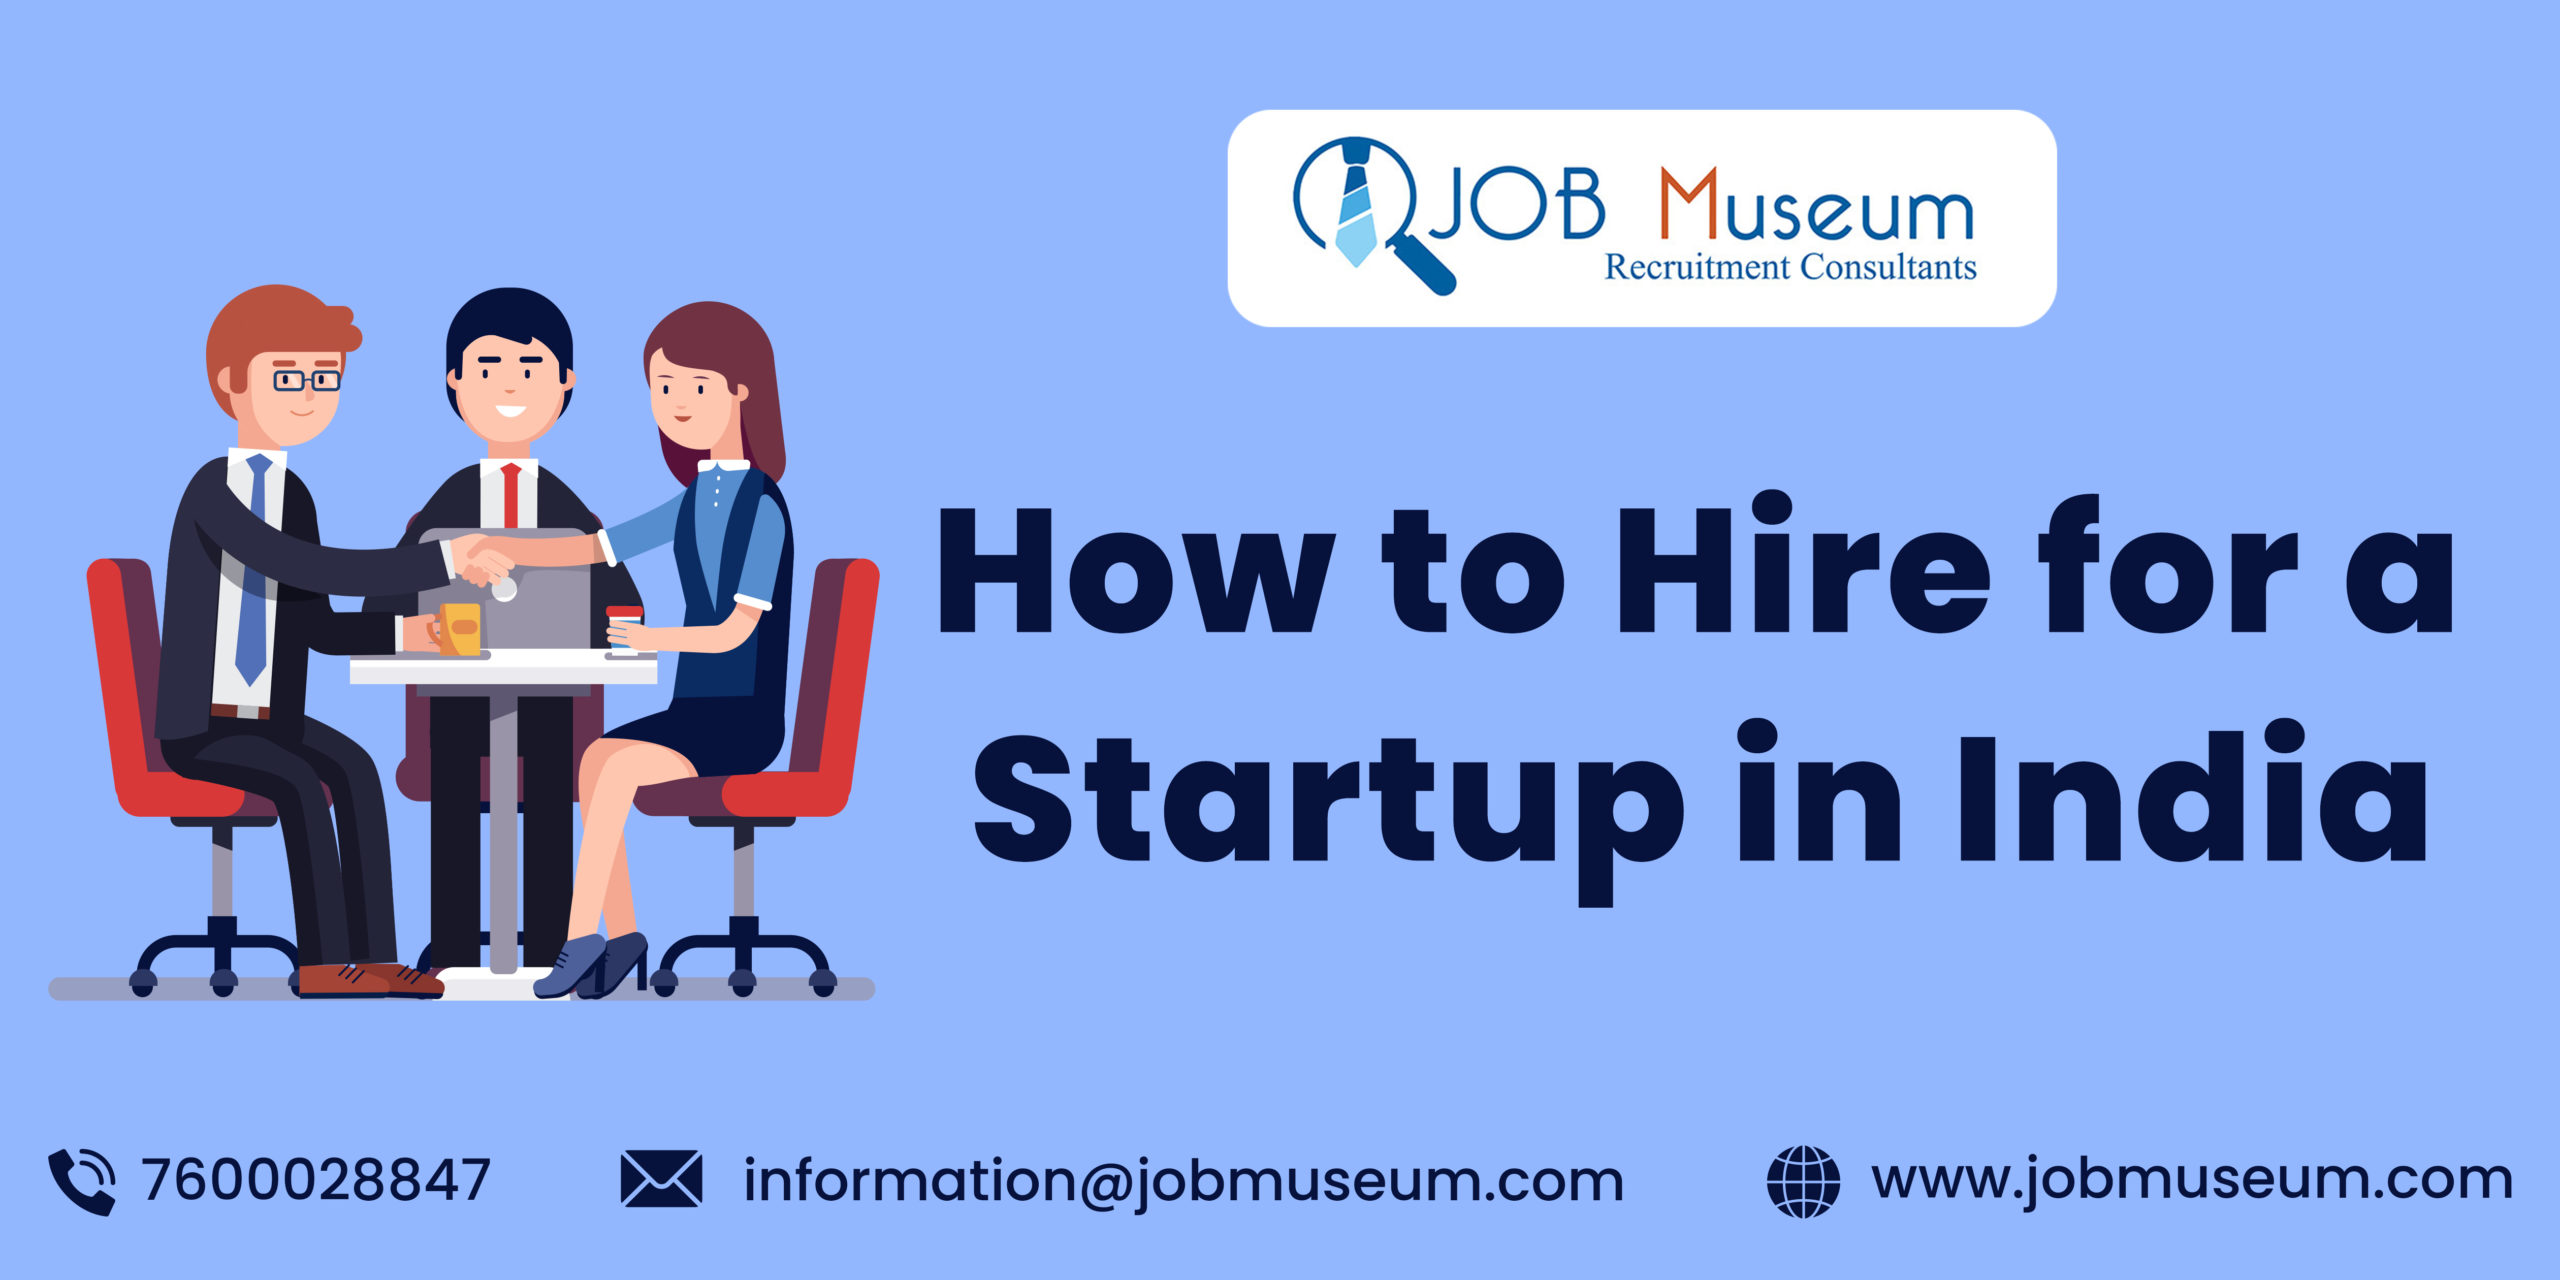 How to hire employees for startup in India